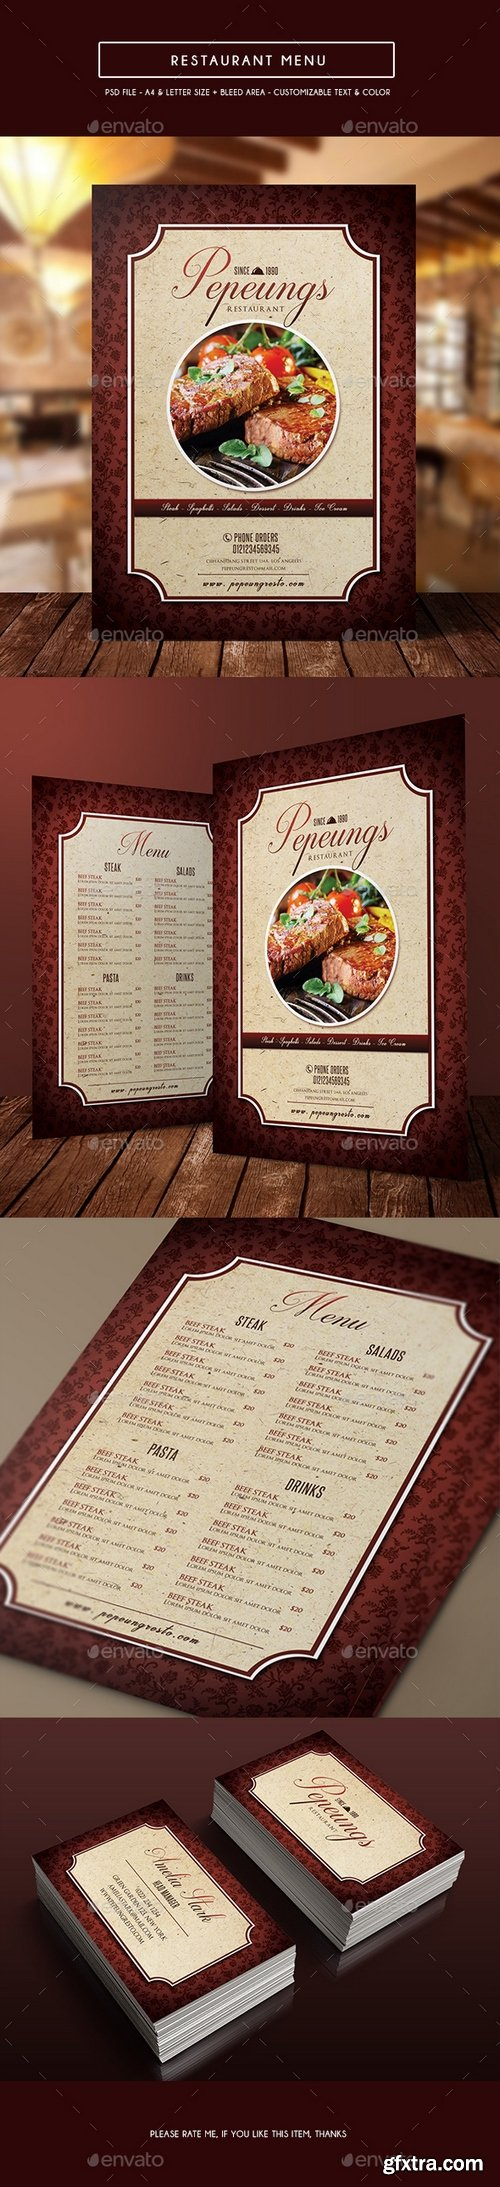 Graphicriver - Elegant Restaurant Menu 14144224